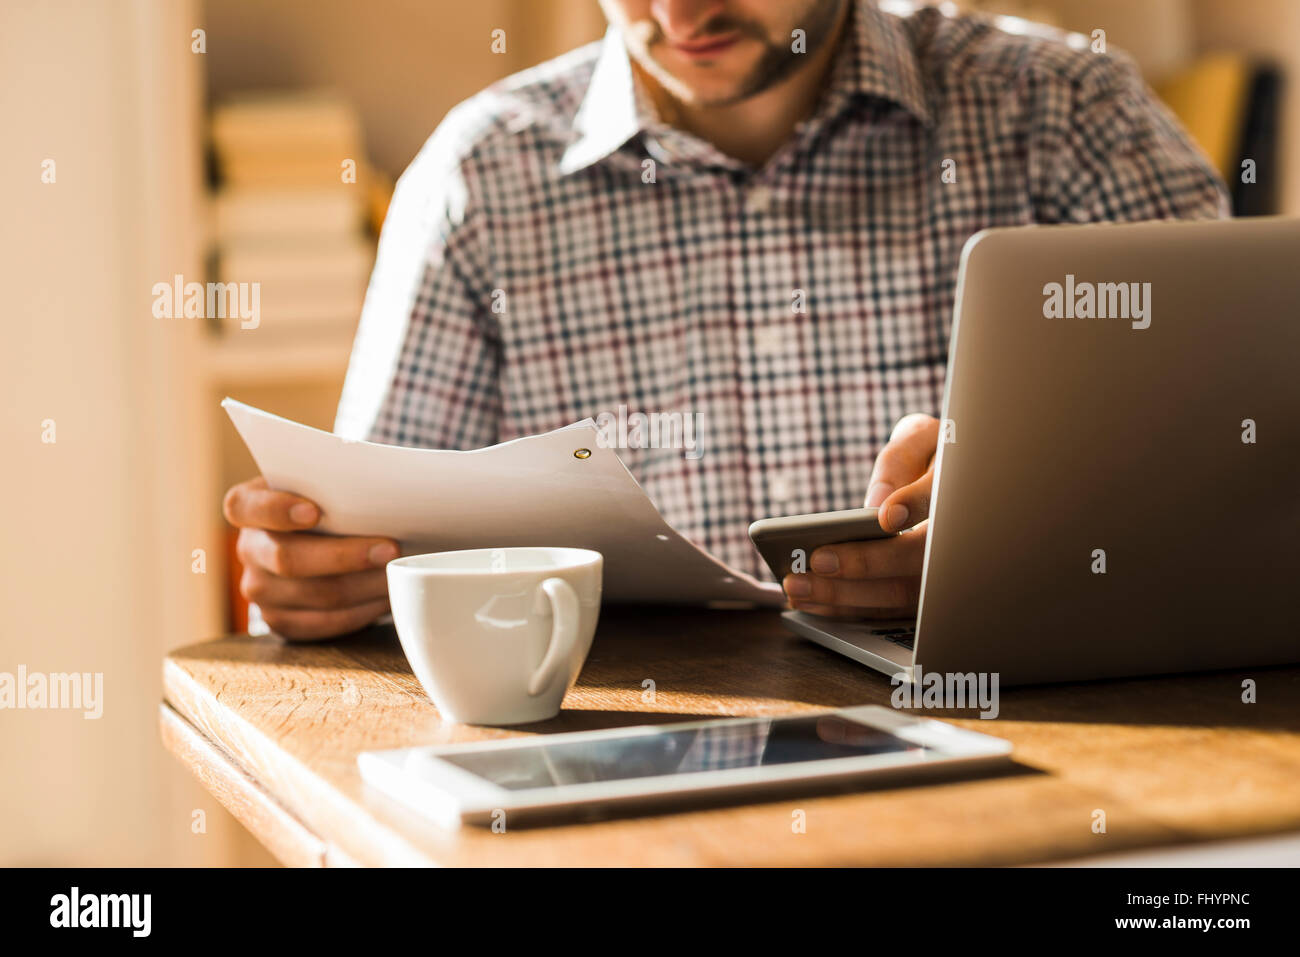 Man with document and mobile devices at desk - Stock Image